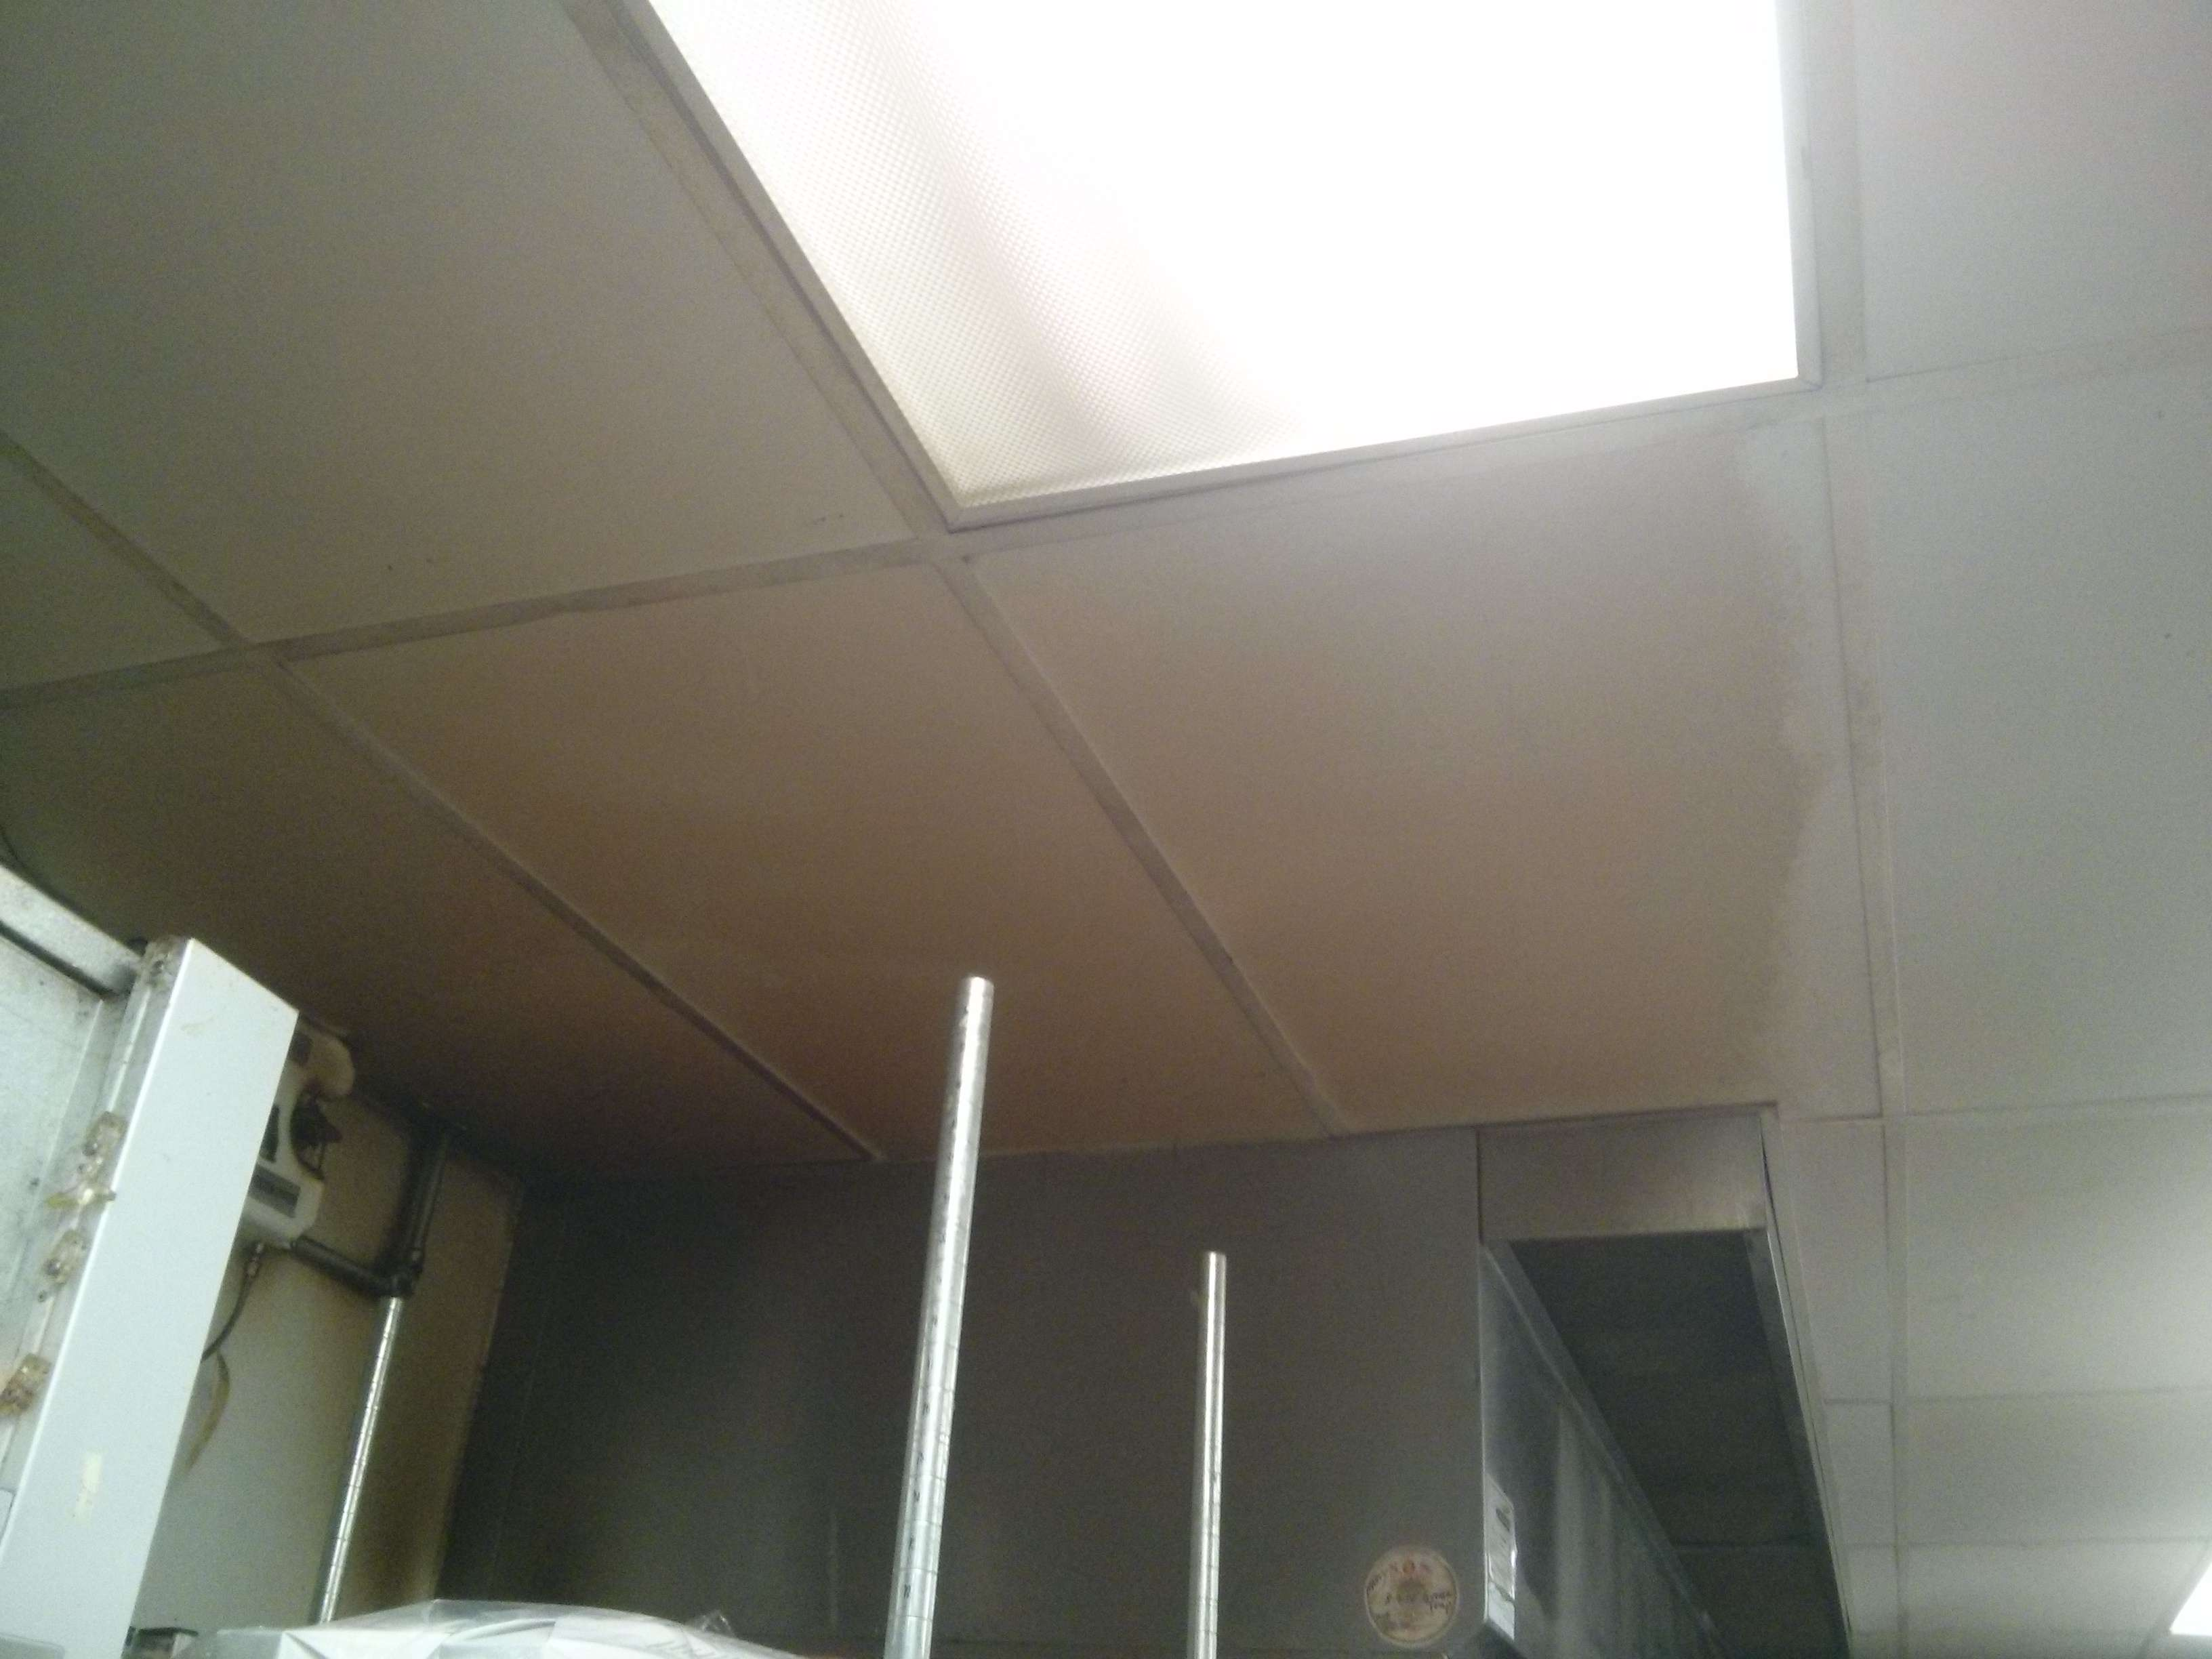 Minneapolis Restaurant Kitchen ceiling with grease build-up